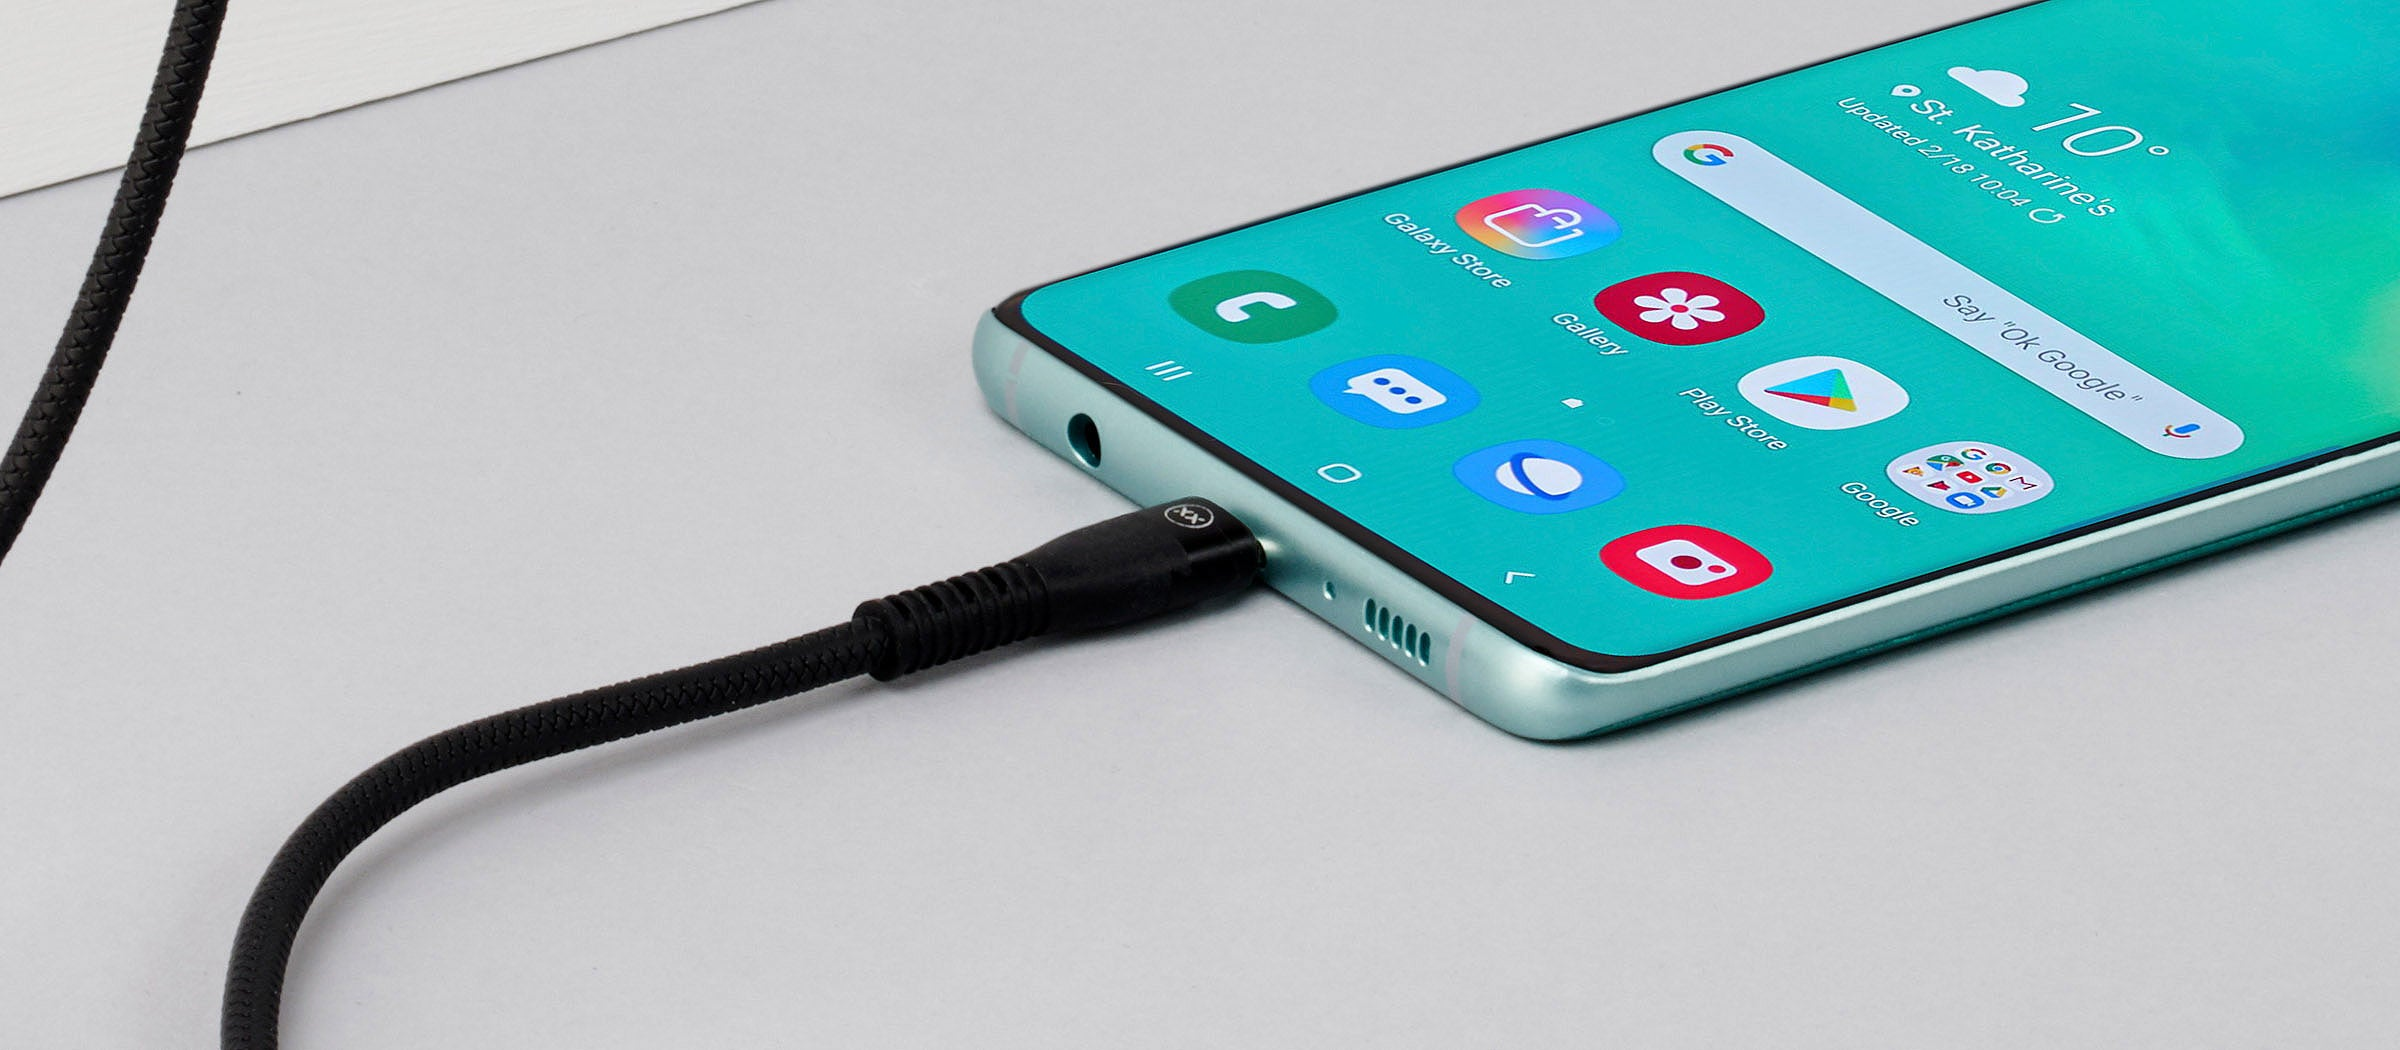 USB charging cable for Samsung S9 or S10